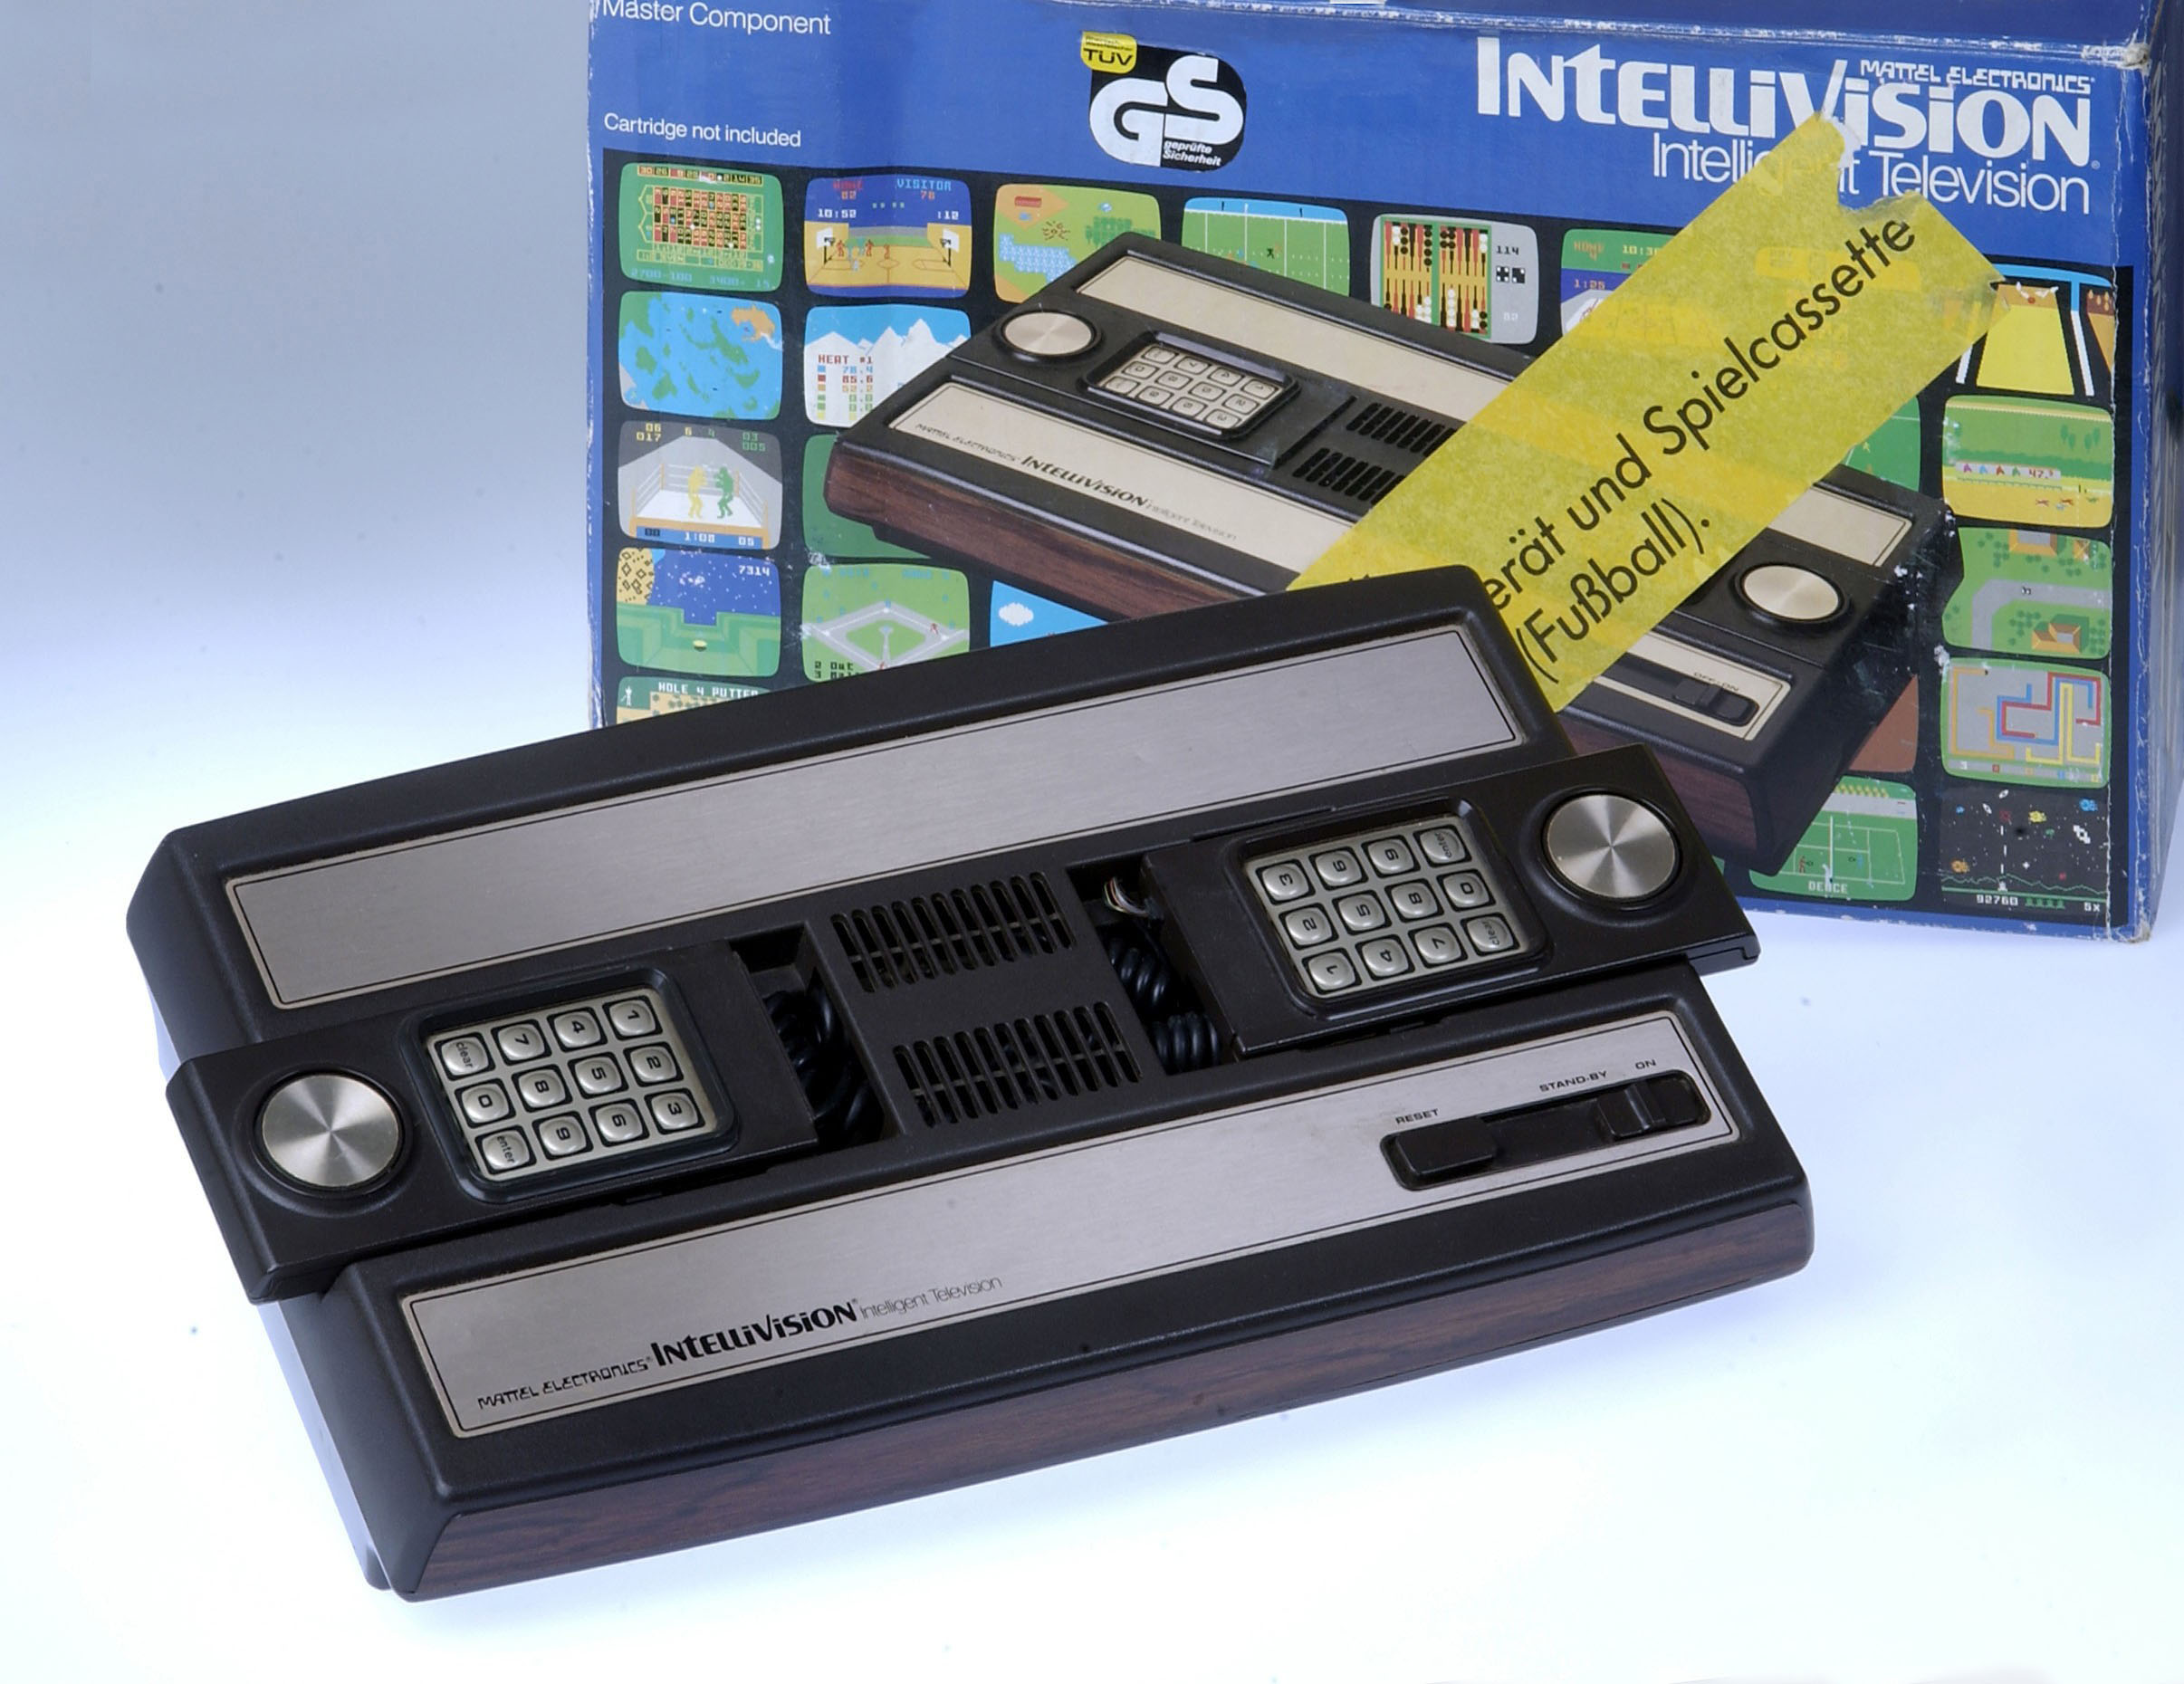 "games, video game ""Intellivision"" (Intelligent Television), boxed console, Germany, 1979, 1970s, 70s, 20th century, historic, hi"